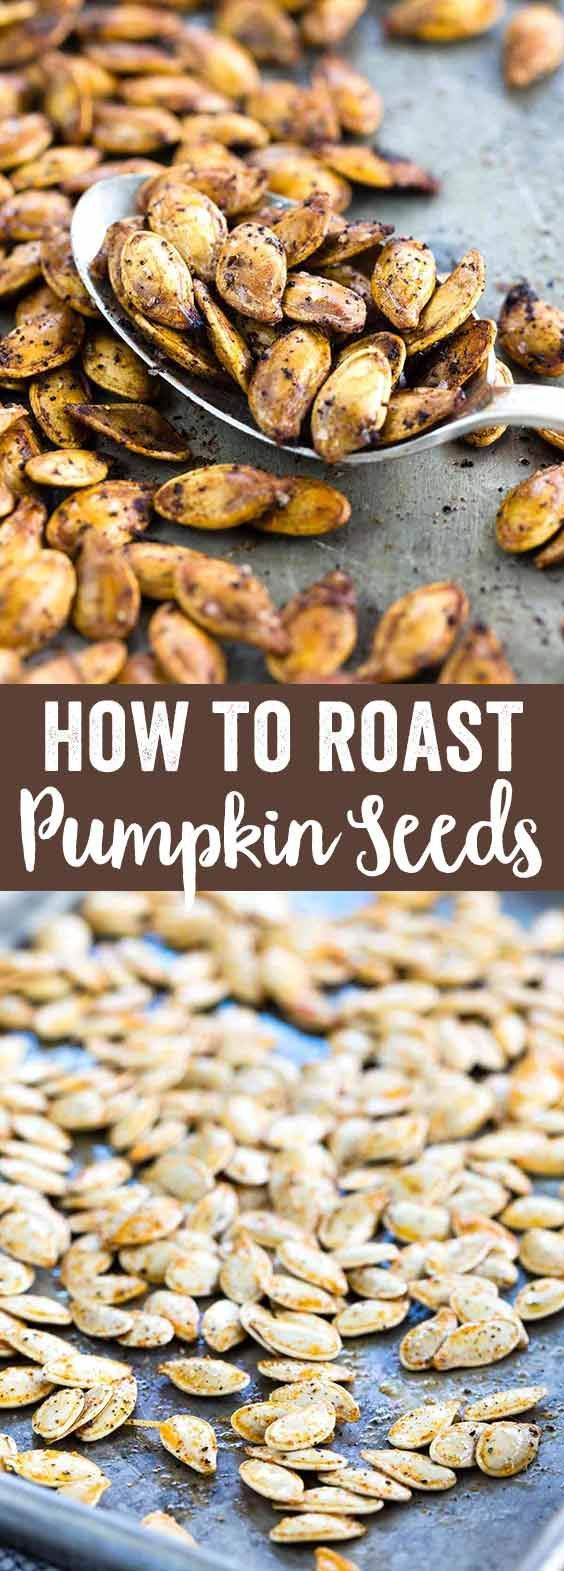 Save the seeds from your pumpkins this year and make roasted pumpkin seeds for a healthy, crunchy snack.  via @foodiegavin